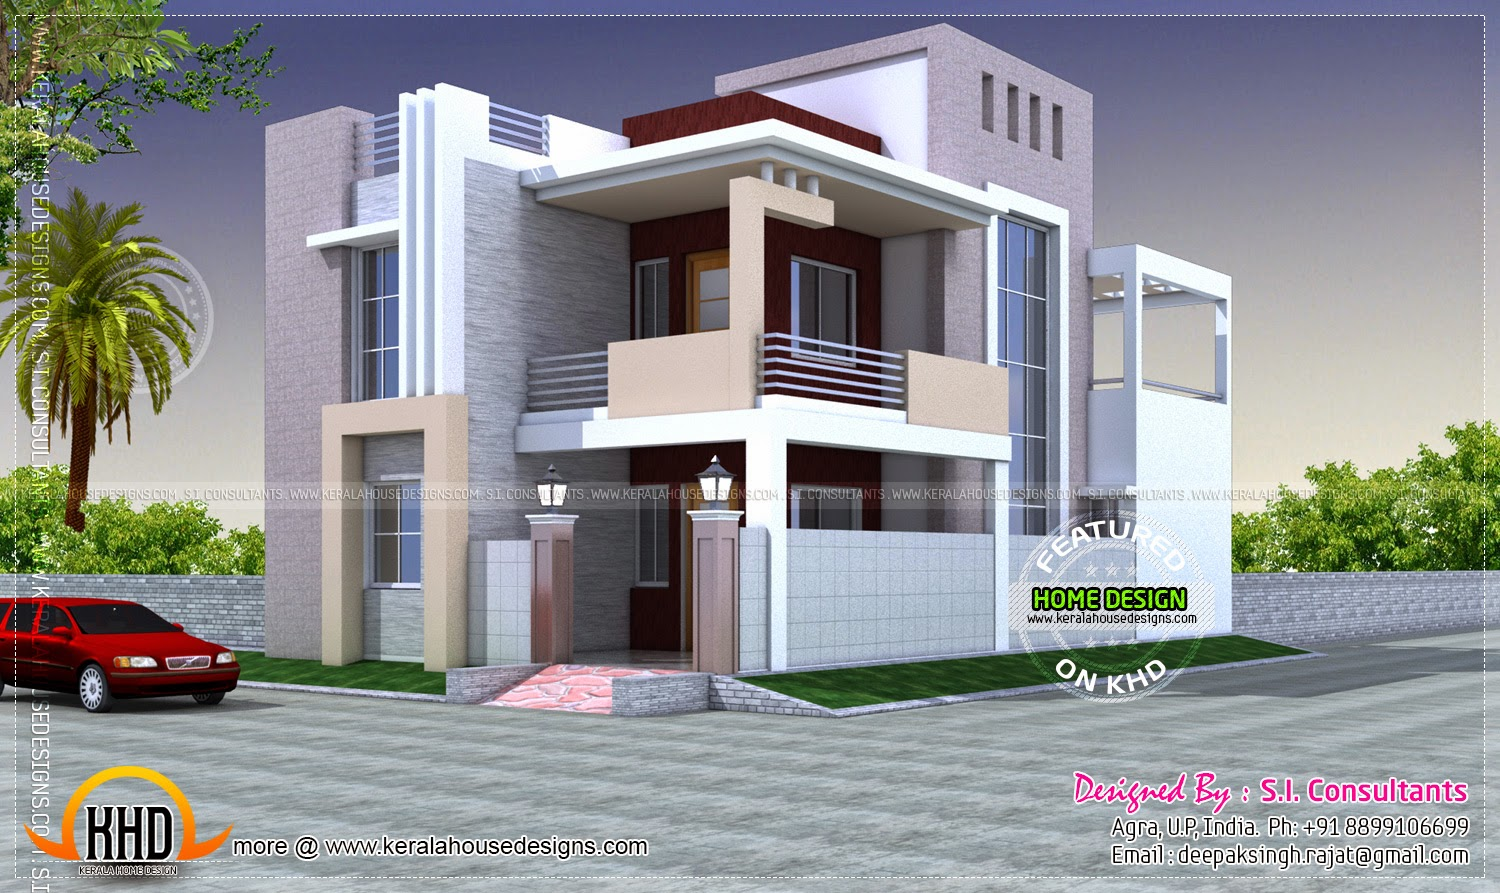 House exterior elevation modern style kerala home design for Home designs exterior styles